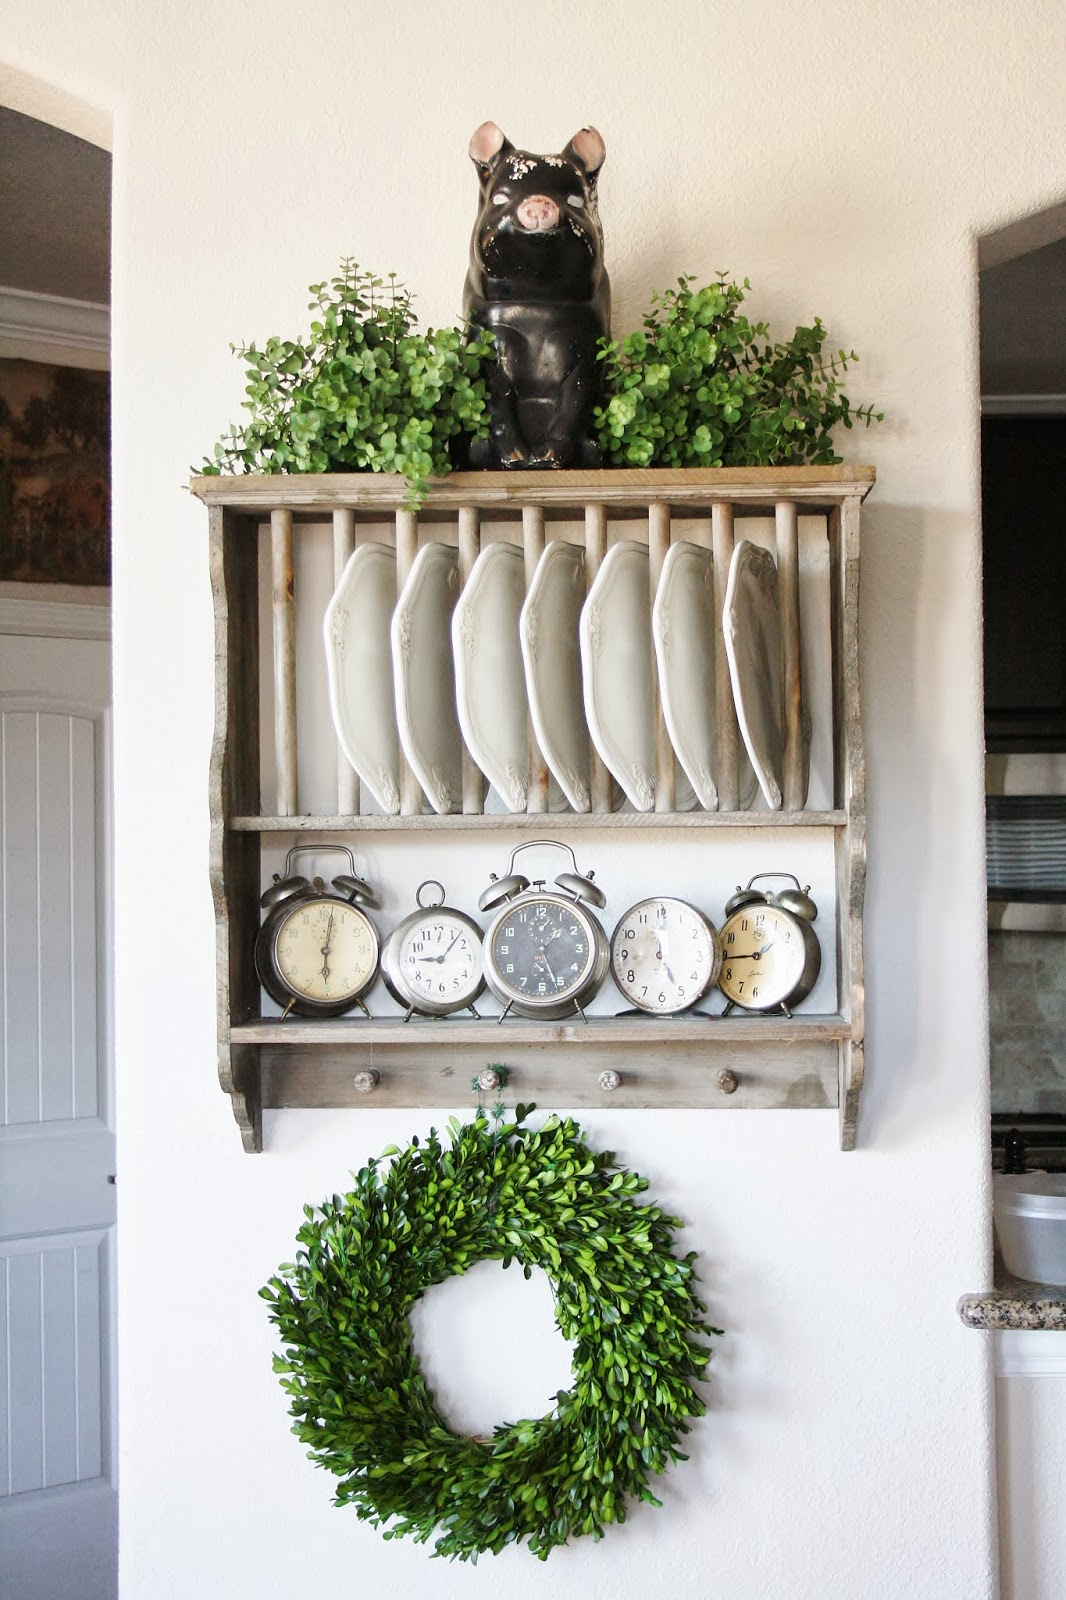 From My Front Porch To Yours- How I Found My Style Sundays- The Farmhouse Porch